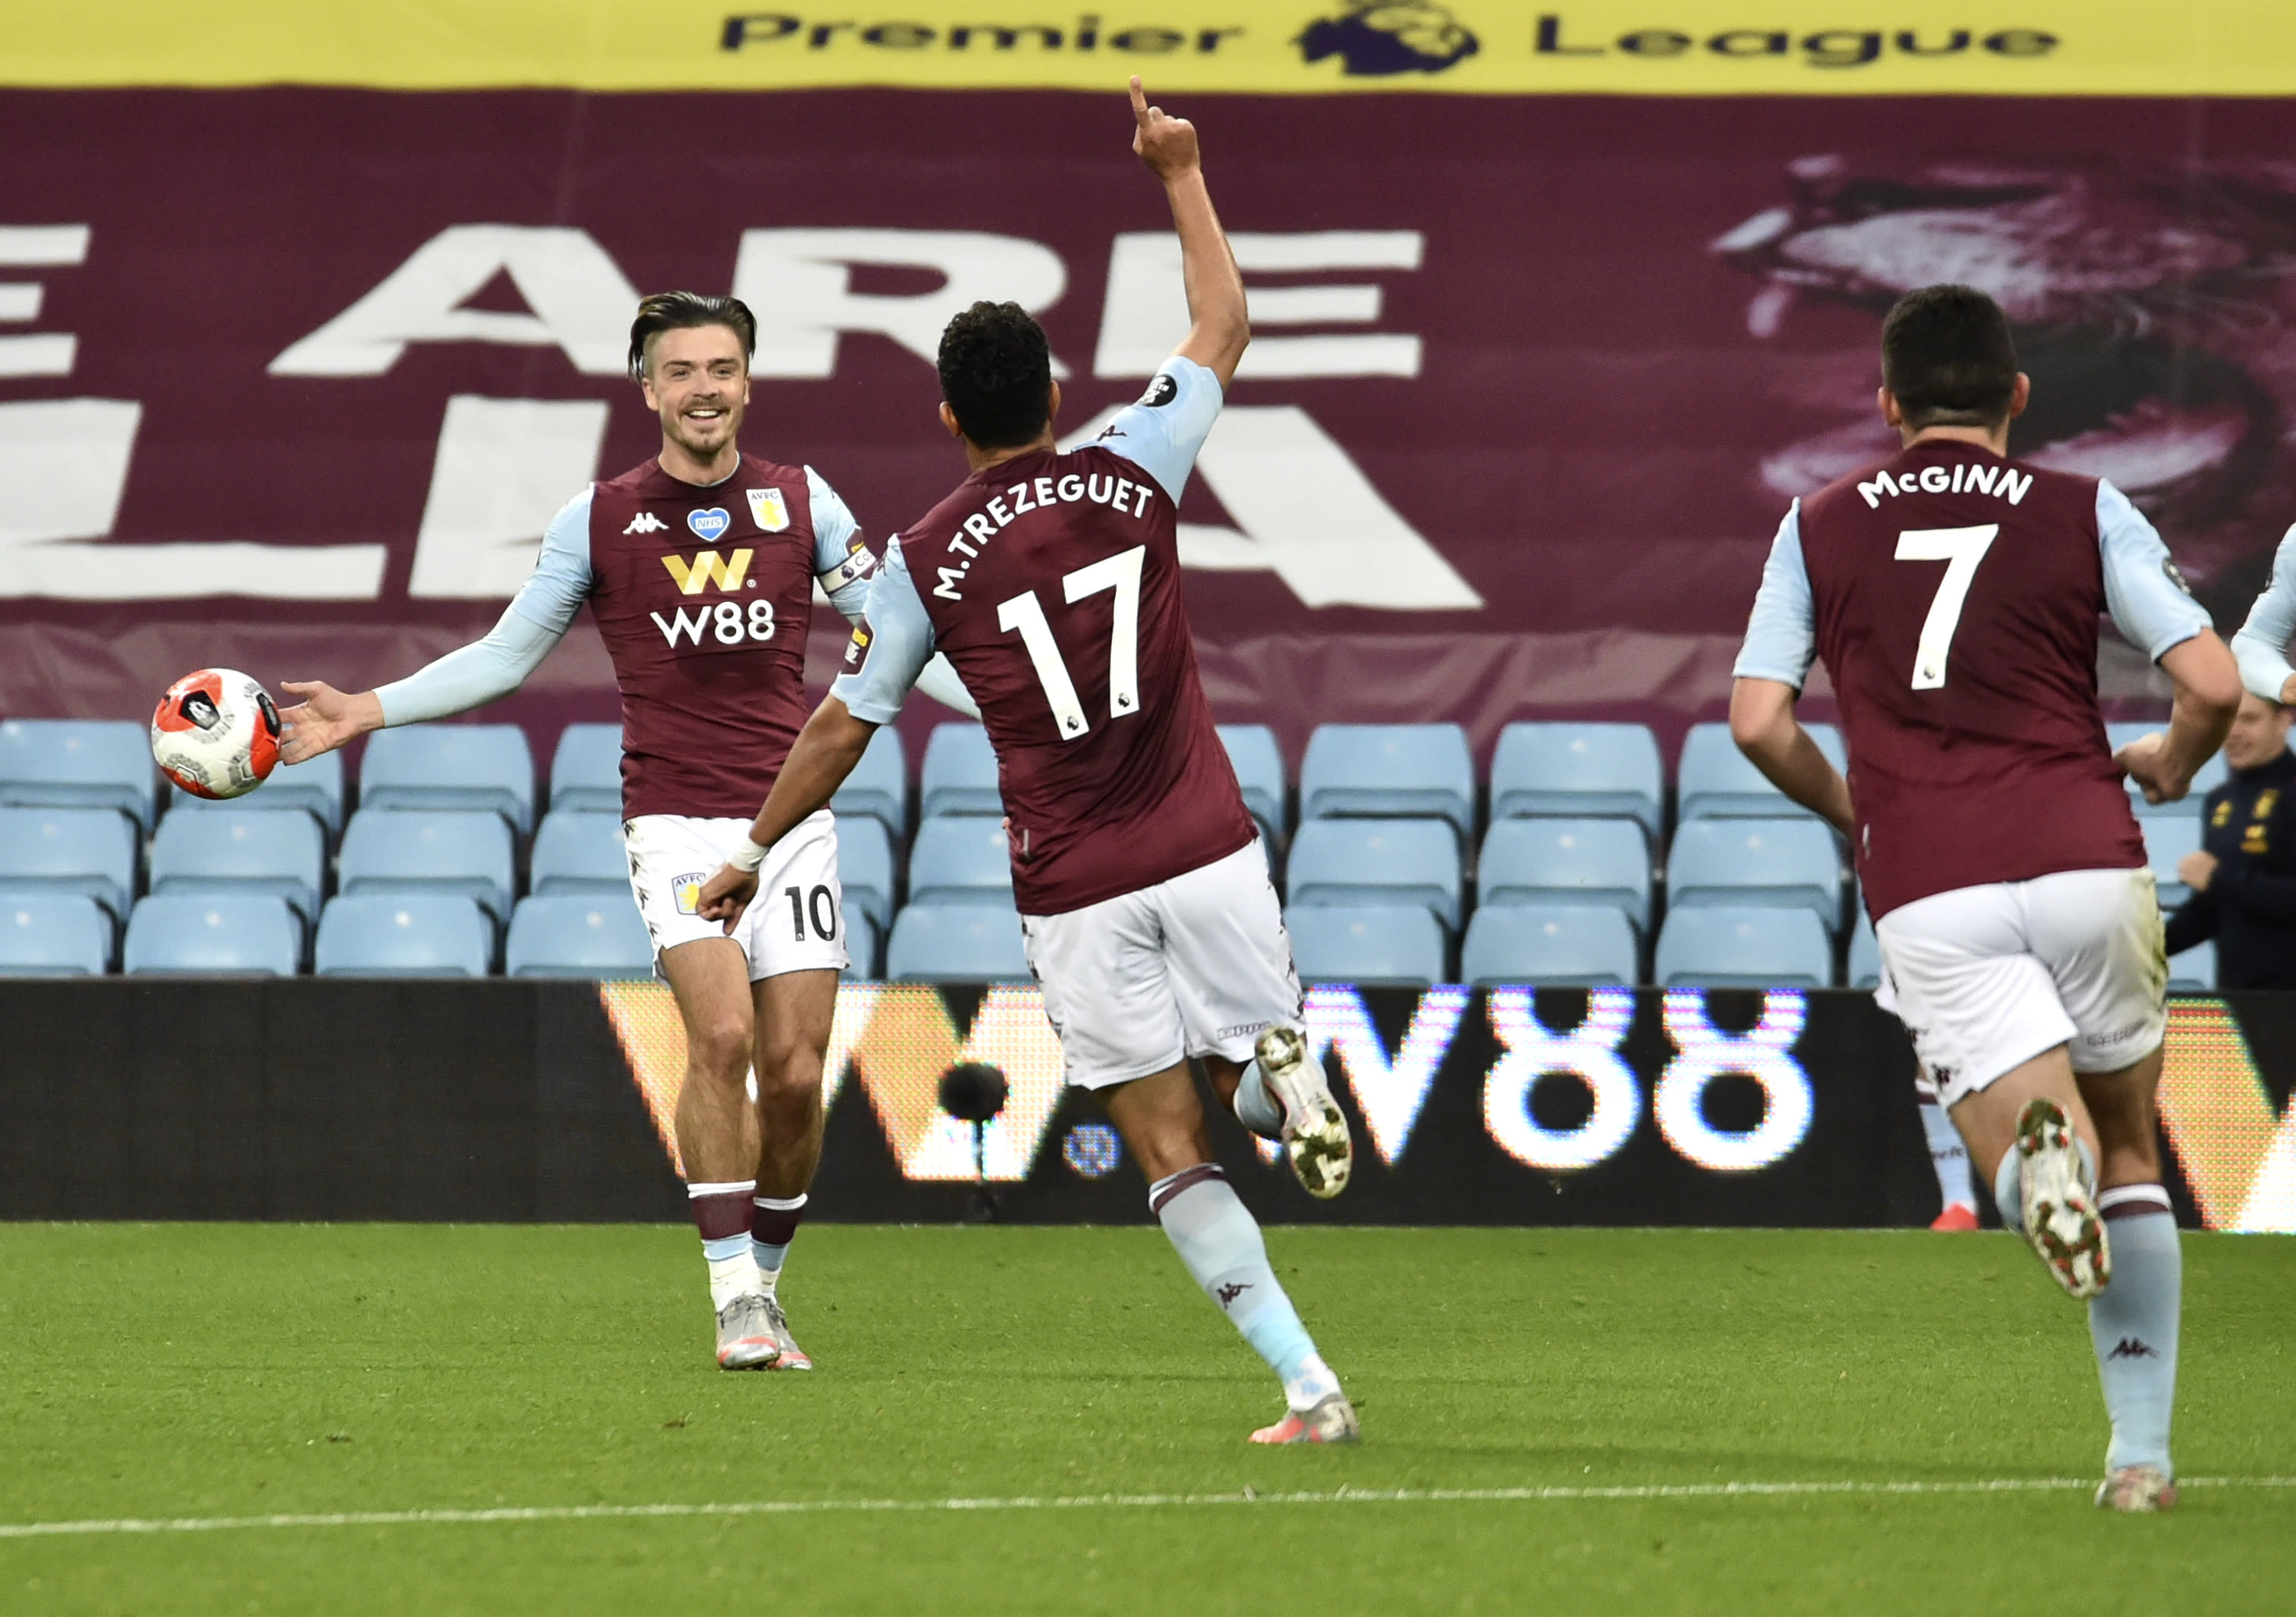 Aston Villa's Trezeguet, centre, celebrates with teammate Jack Grealish, left, after scoring his team's first goal during the English Premier League soccer match between Aston Villa and Arsenal at Villa Park in Birmingham, England, Tuesday, July 21, 2020. (AP Photo/Rui Vieira,Pool)